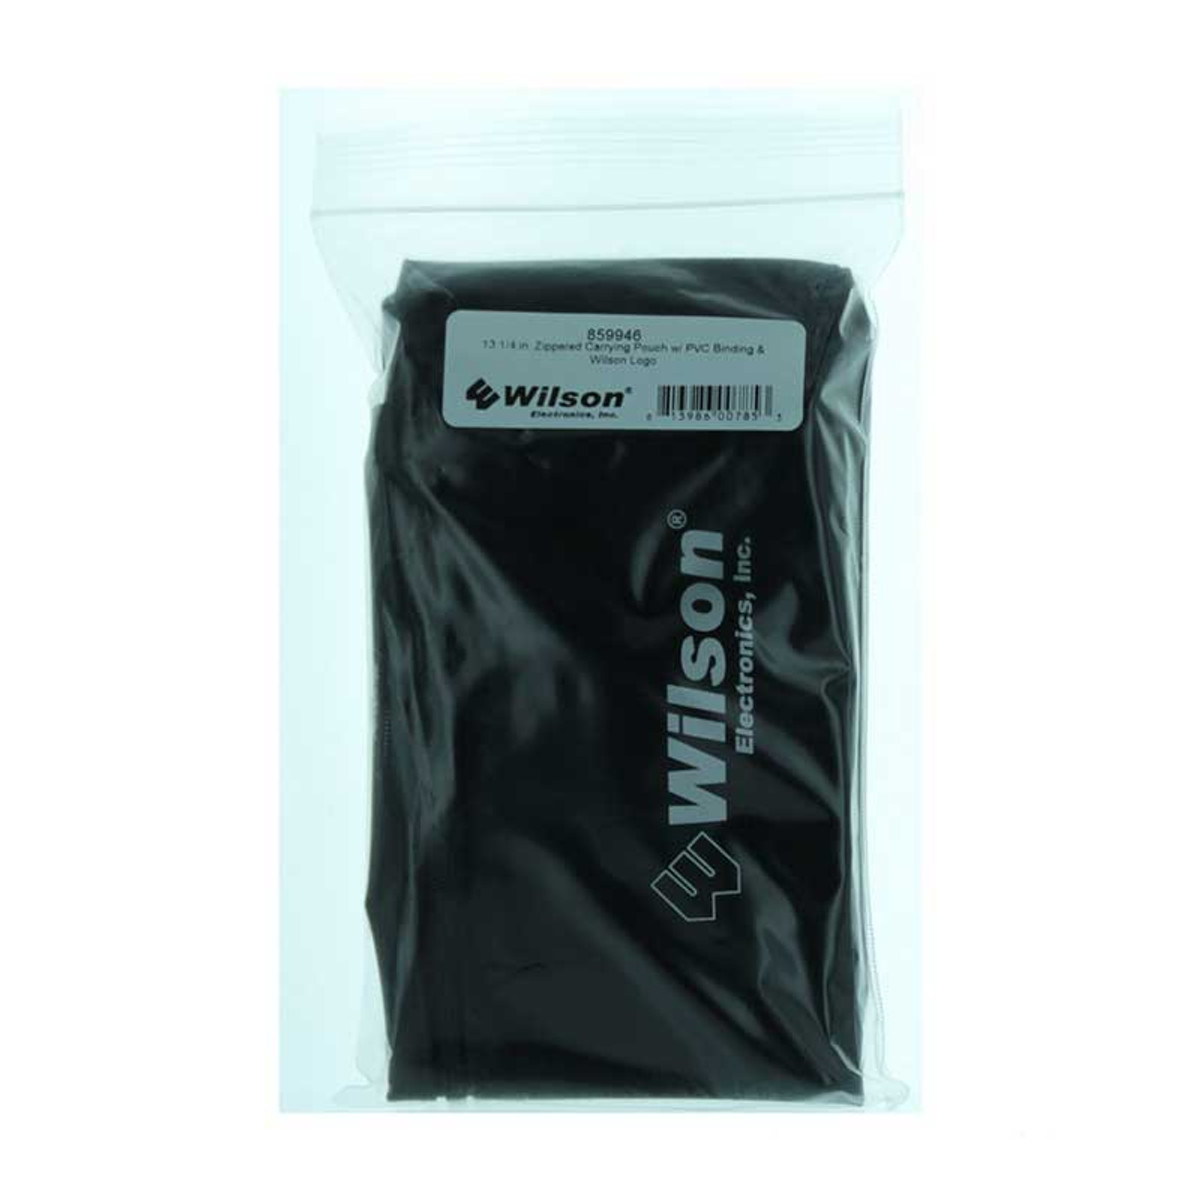 Wilson 859946 13 inch Mobile professional Zippered Carrying Pouch, in retail packaging